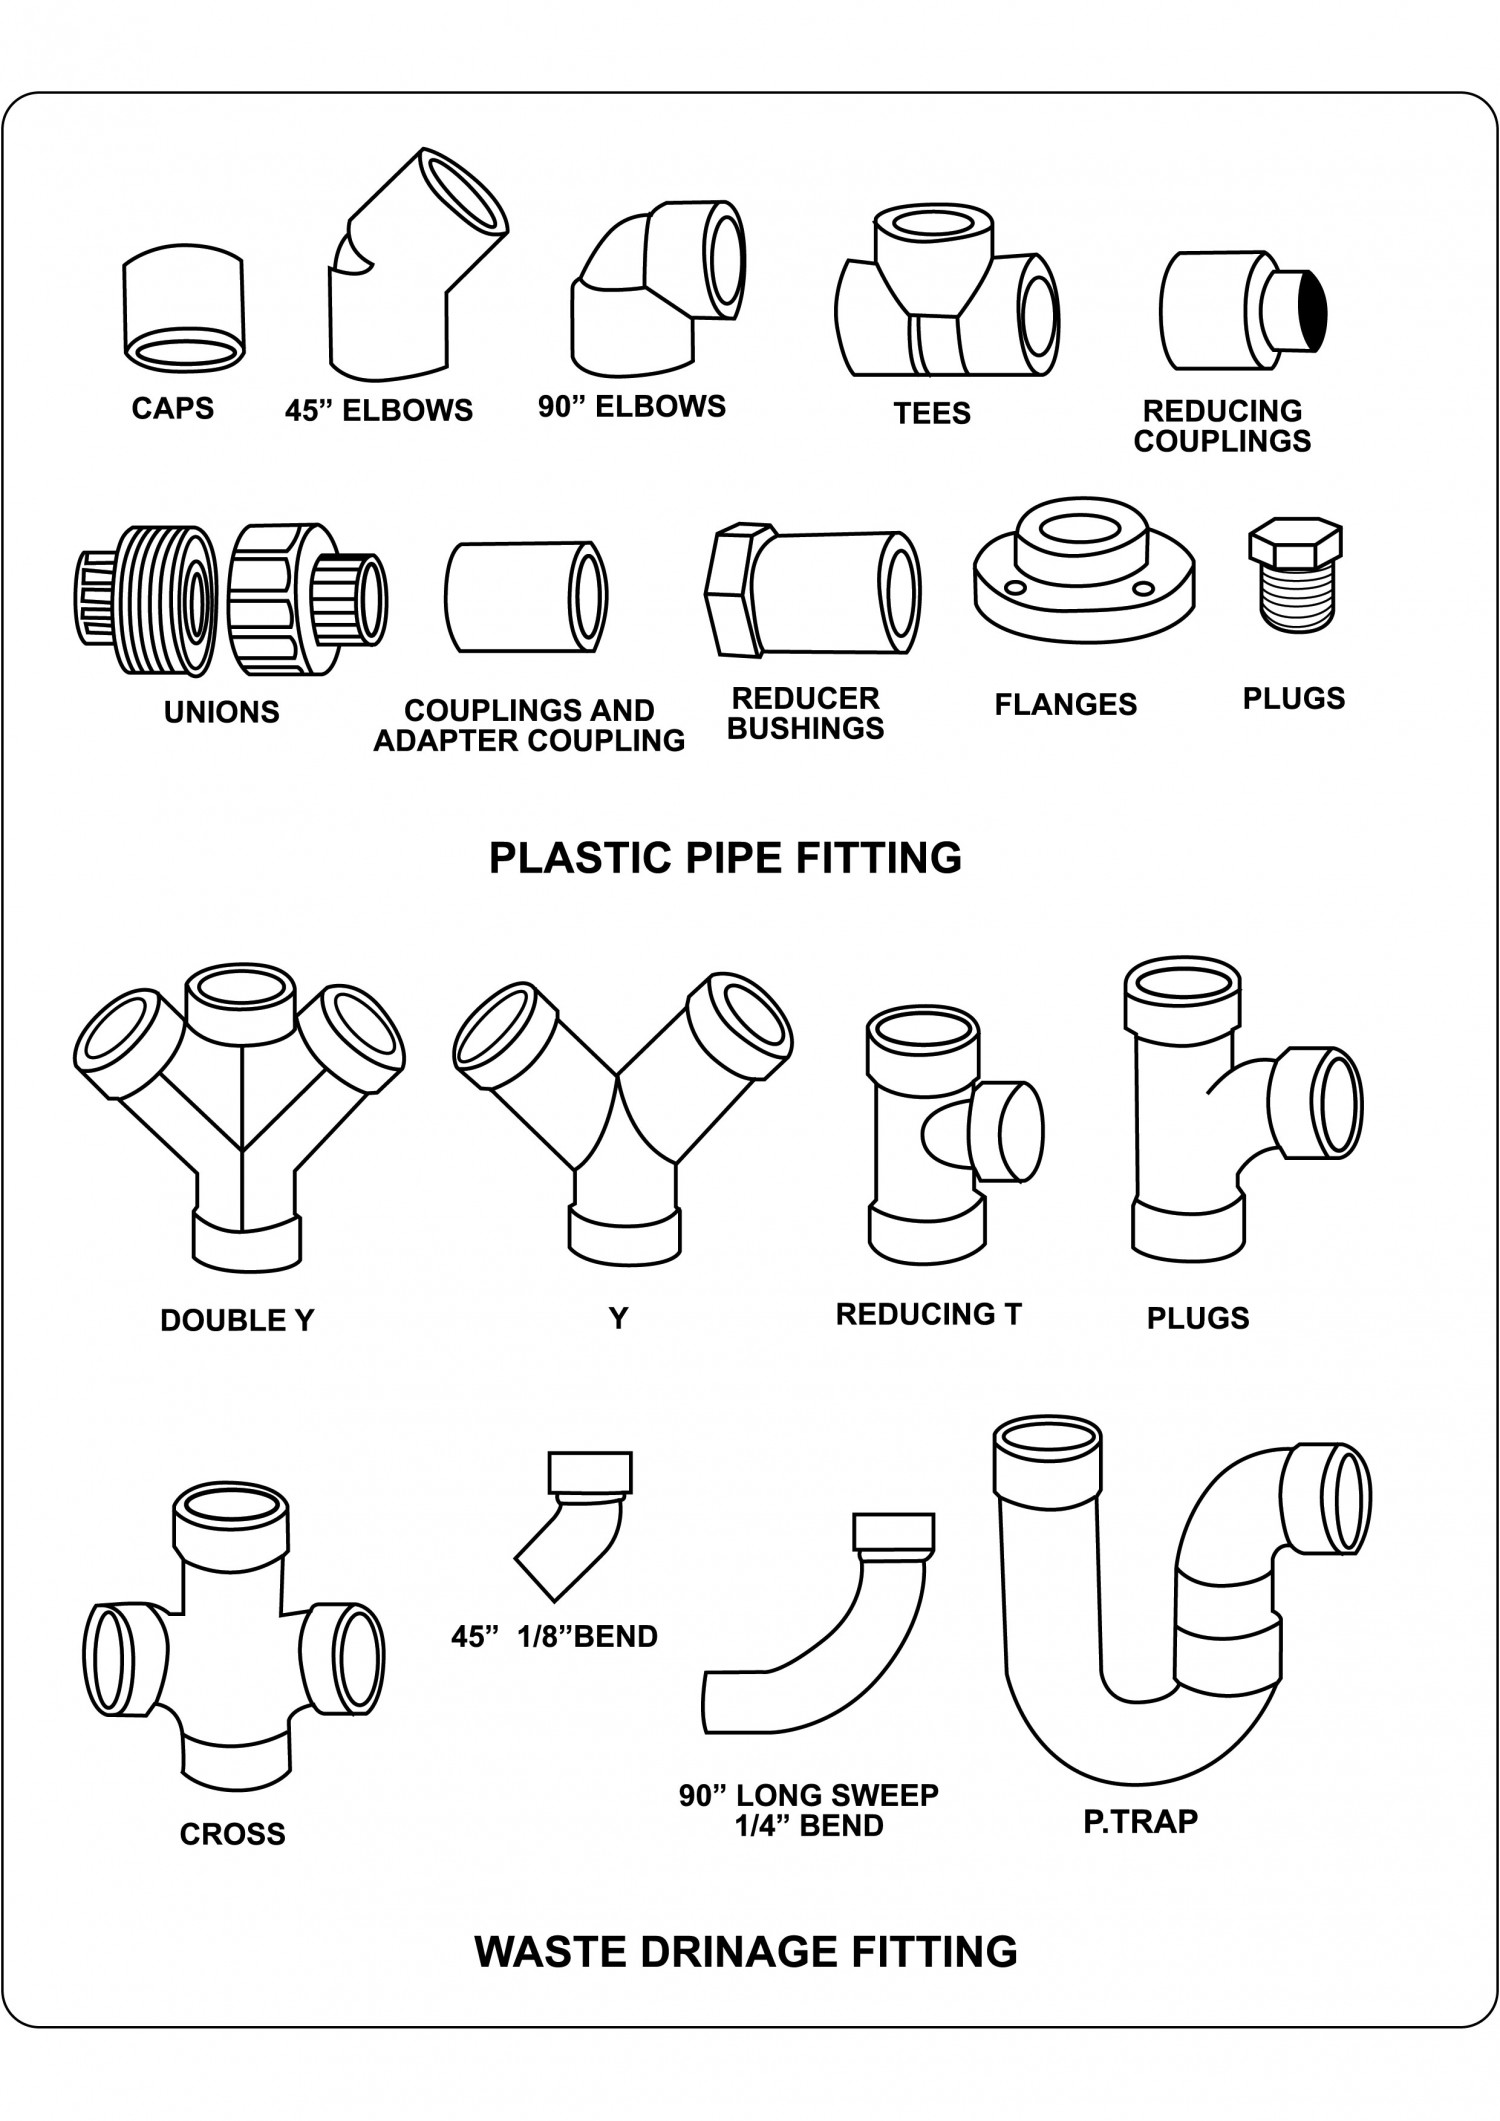 Waste Drainage Fitting Visual Ly